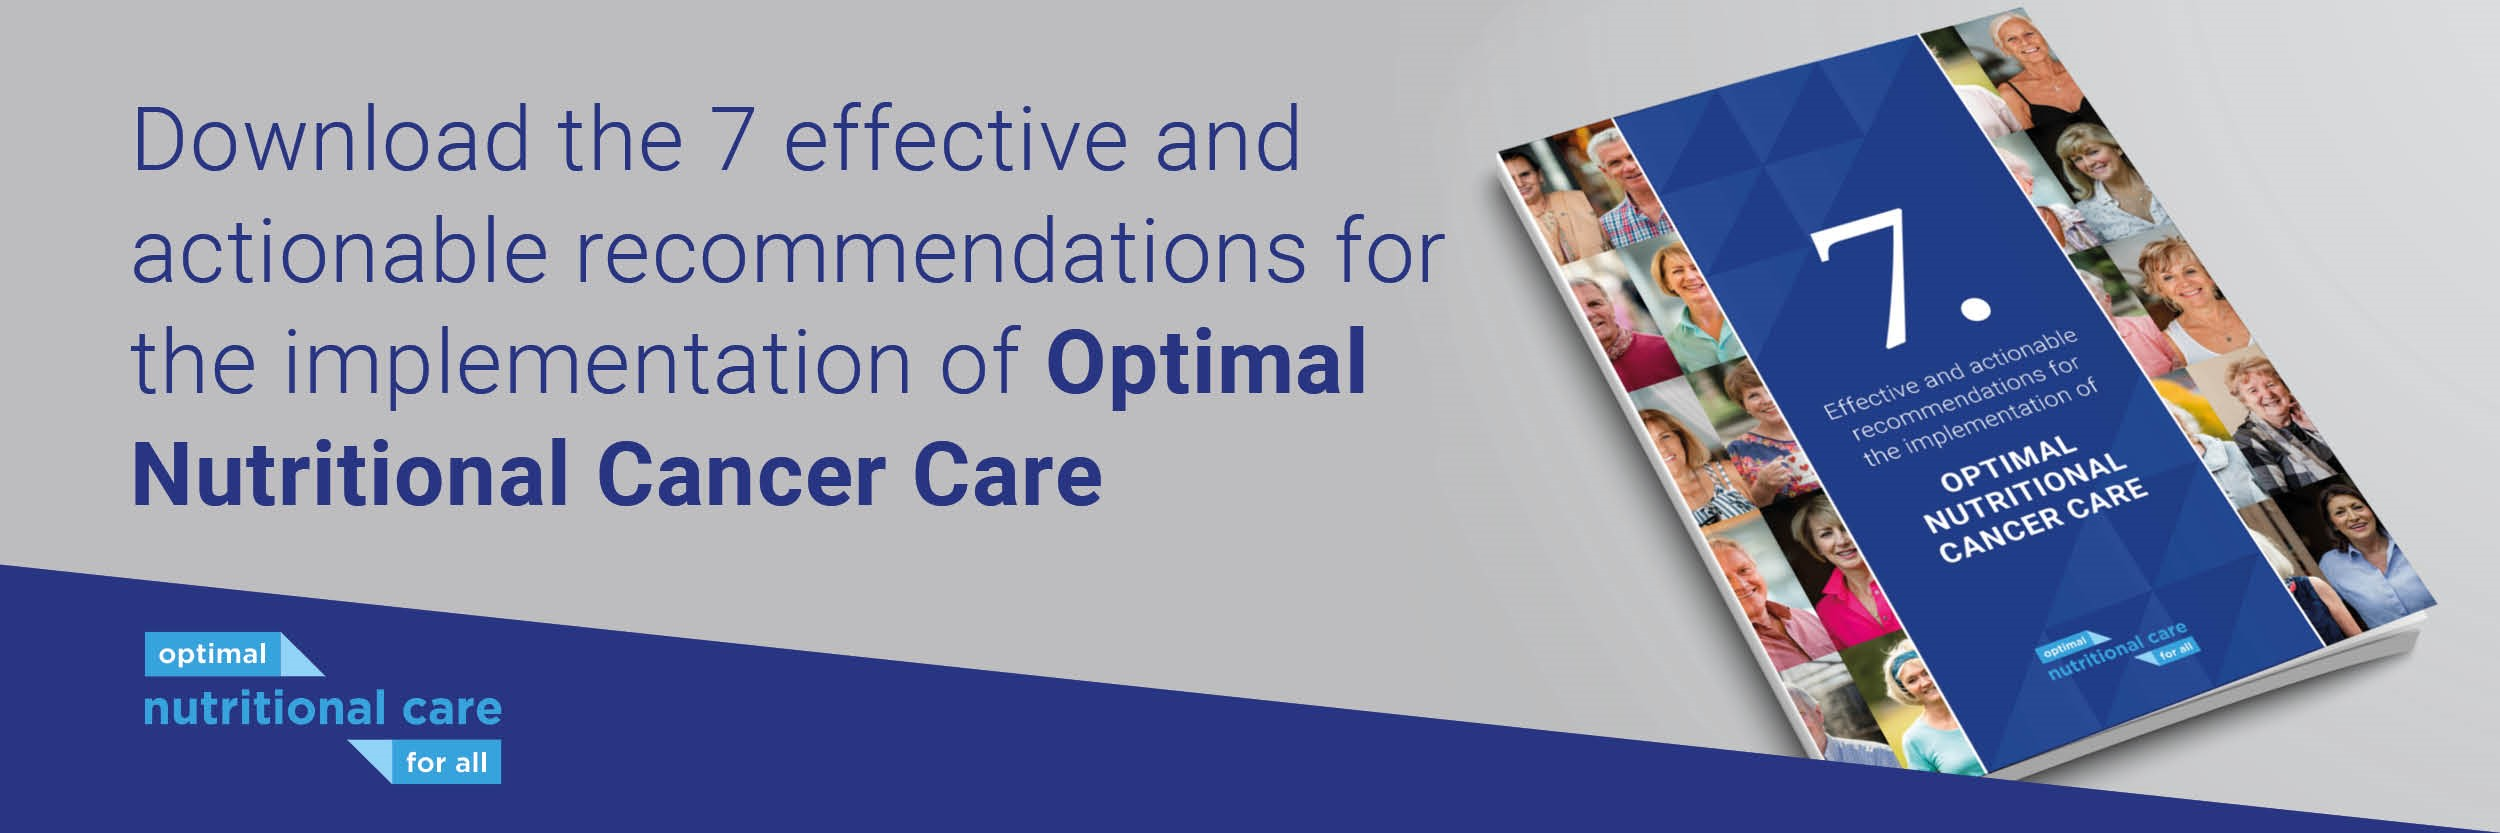 To influence EU programmes and to support national initiatives, the European Nutrition for Health Alliance and its partners have developed a joint call to action with 7 actionable recommendations designed to ensure the protection of nutritional status in cancer in national health policies.